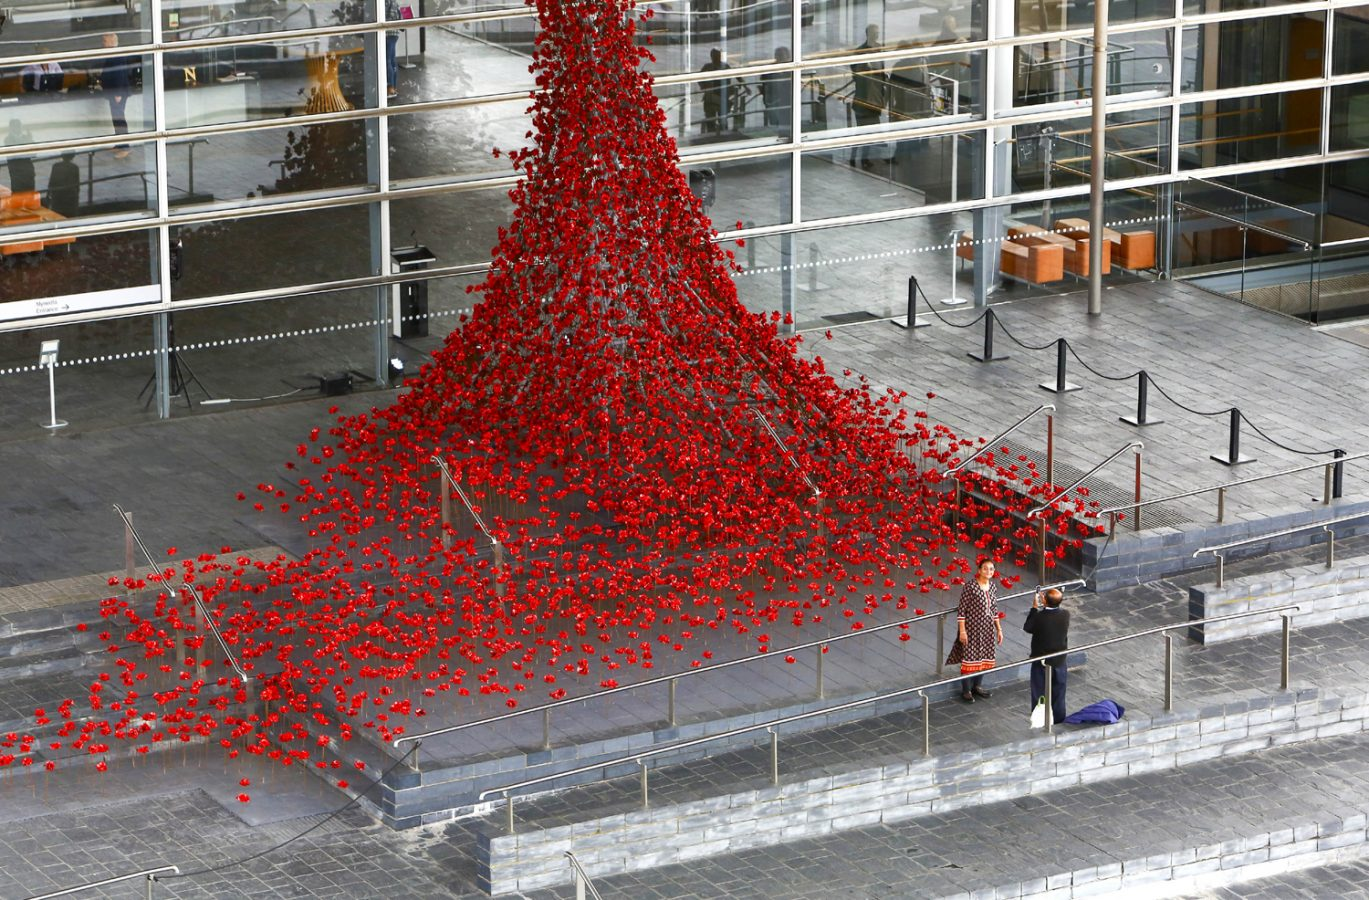 Image credit: Weeping Window at Y Senedd, the National Assembly for Wales in Cardiff Photo credit: Geoff Caddick/PA Wire